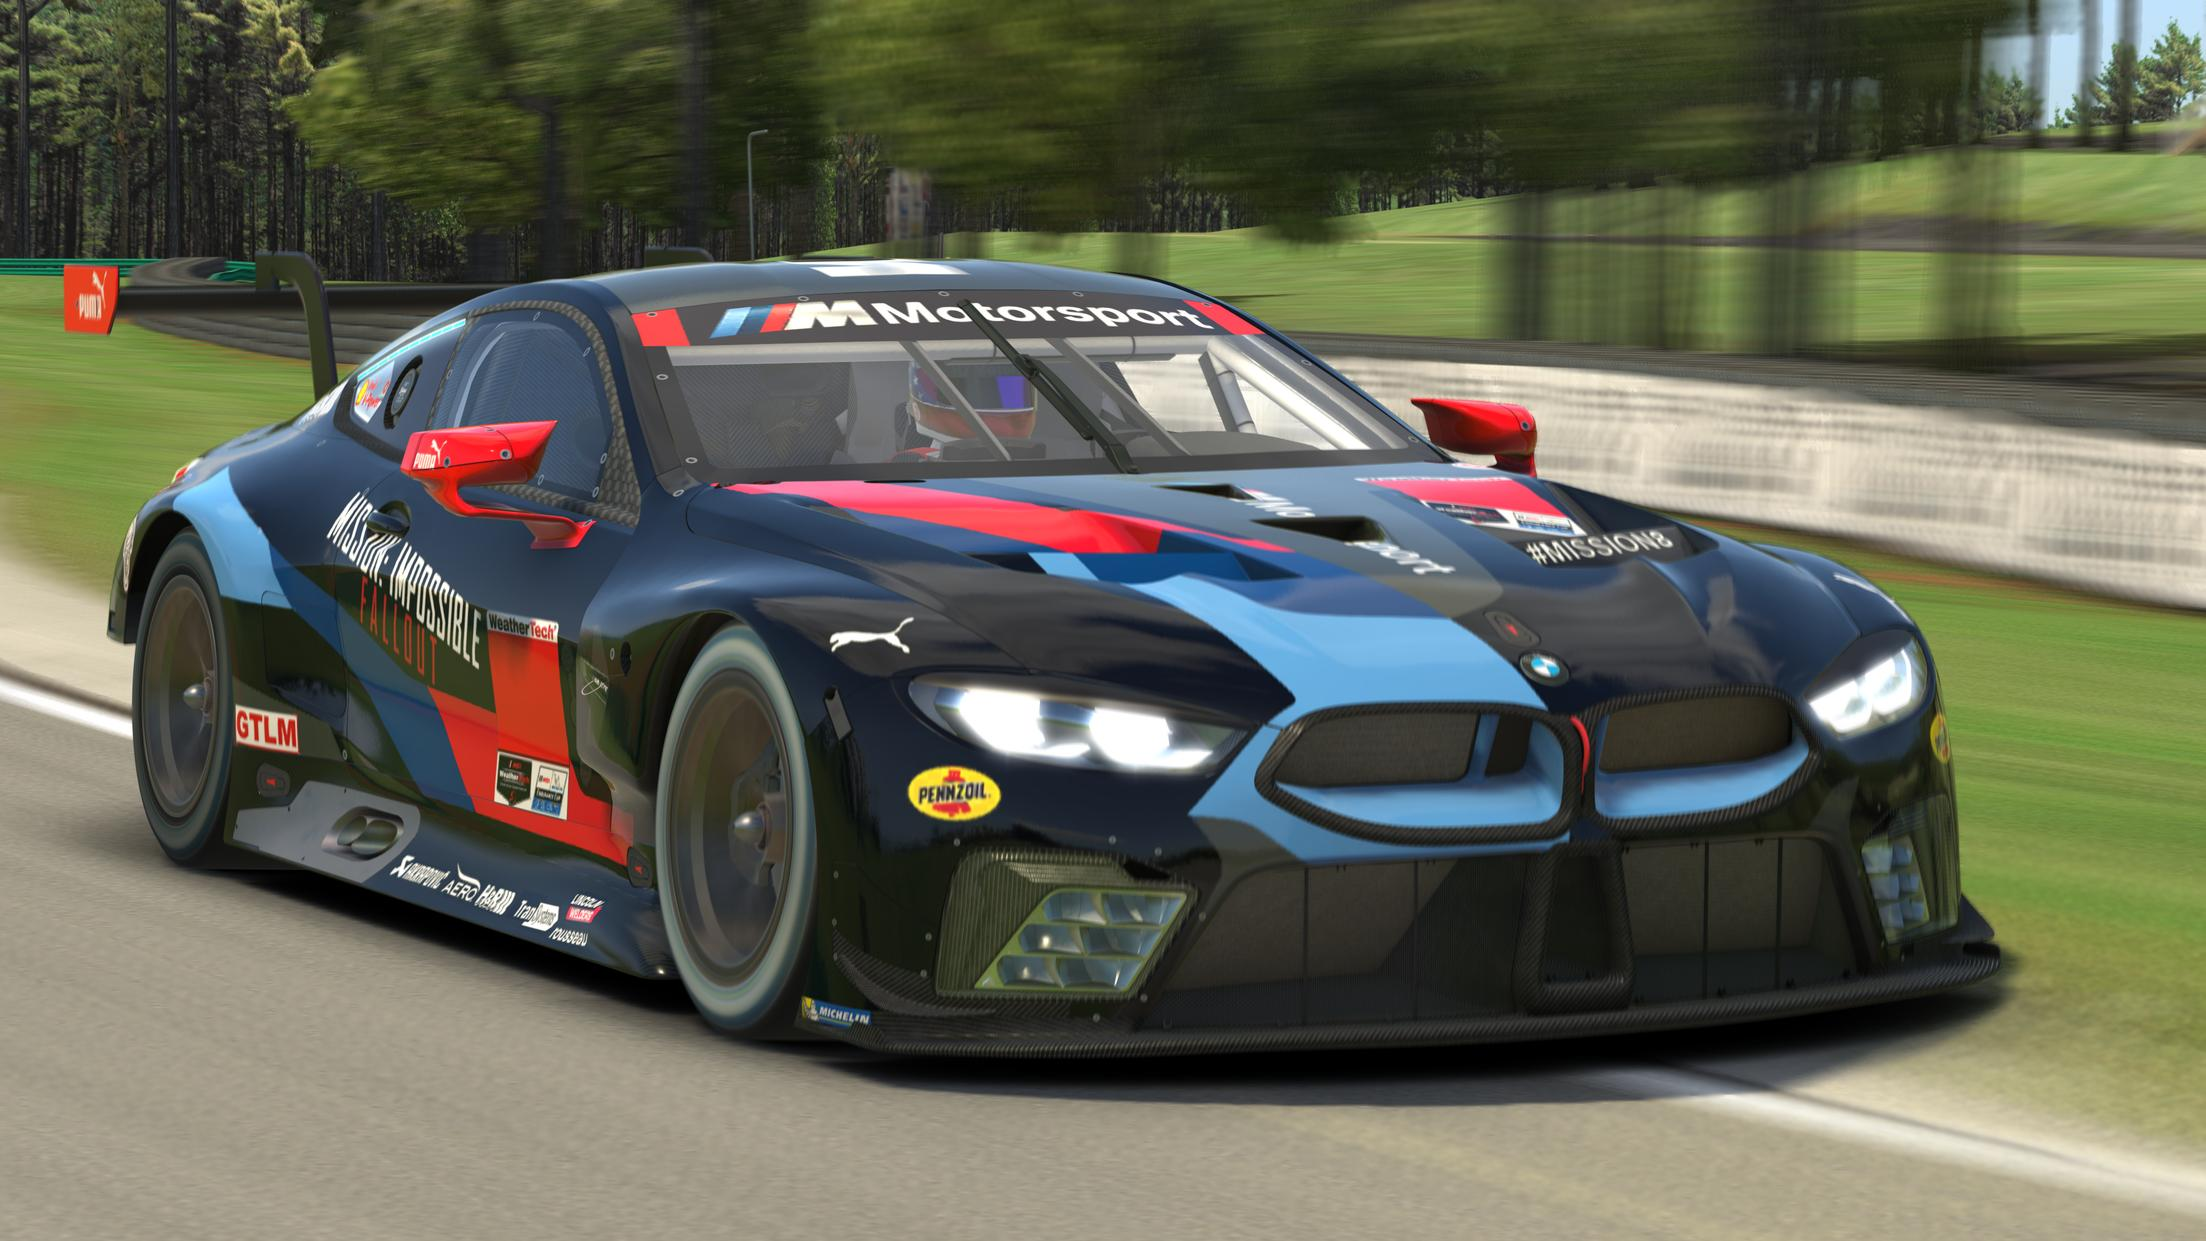 Preview of Black #24 RLL M8 GTLM Livery - IMSA by Andrew Fawcett